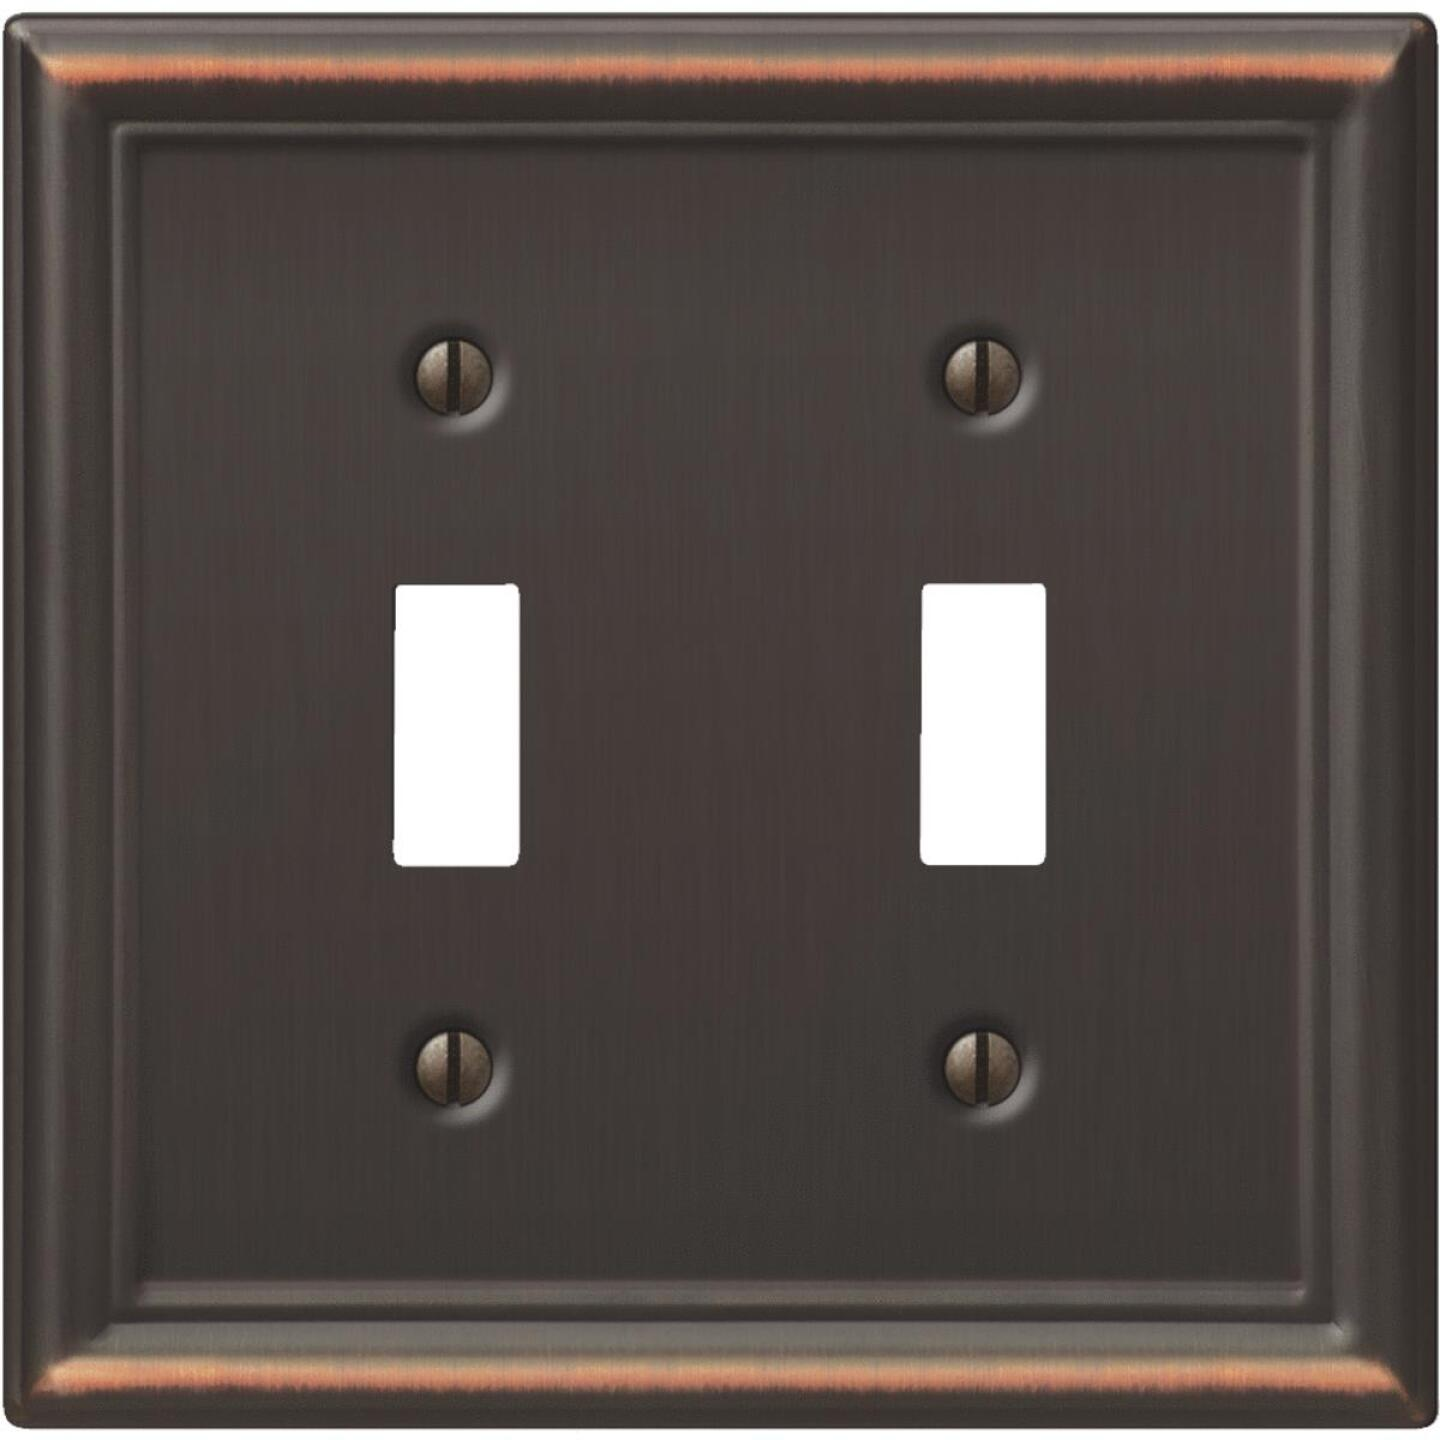 Amerelle Chelsea 2-Gang Stamped Steel Toggle Switch Wall Plate, Aged Bronze Image 1